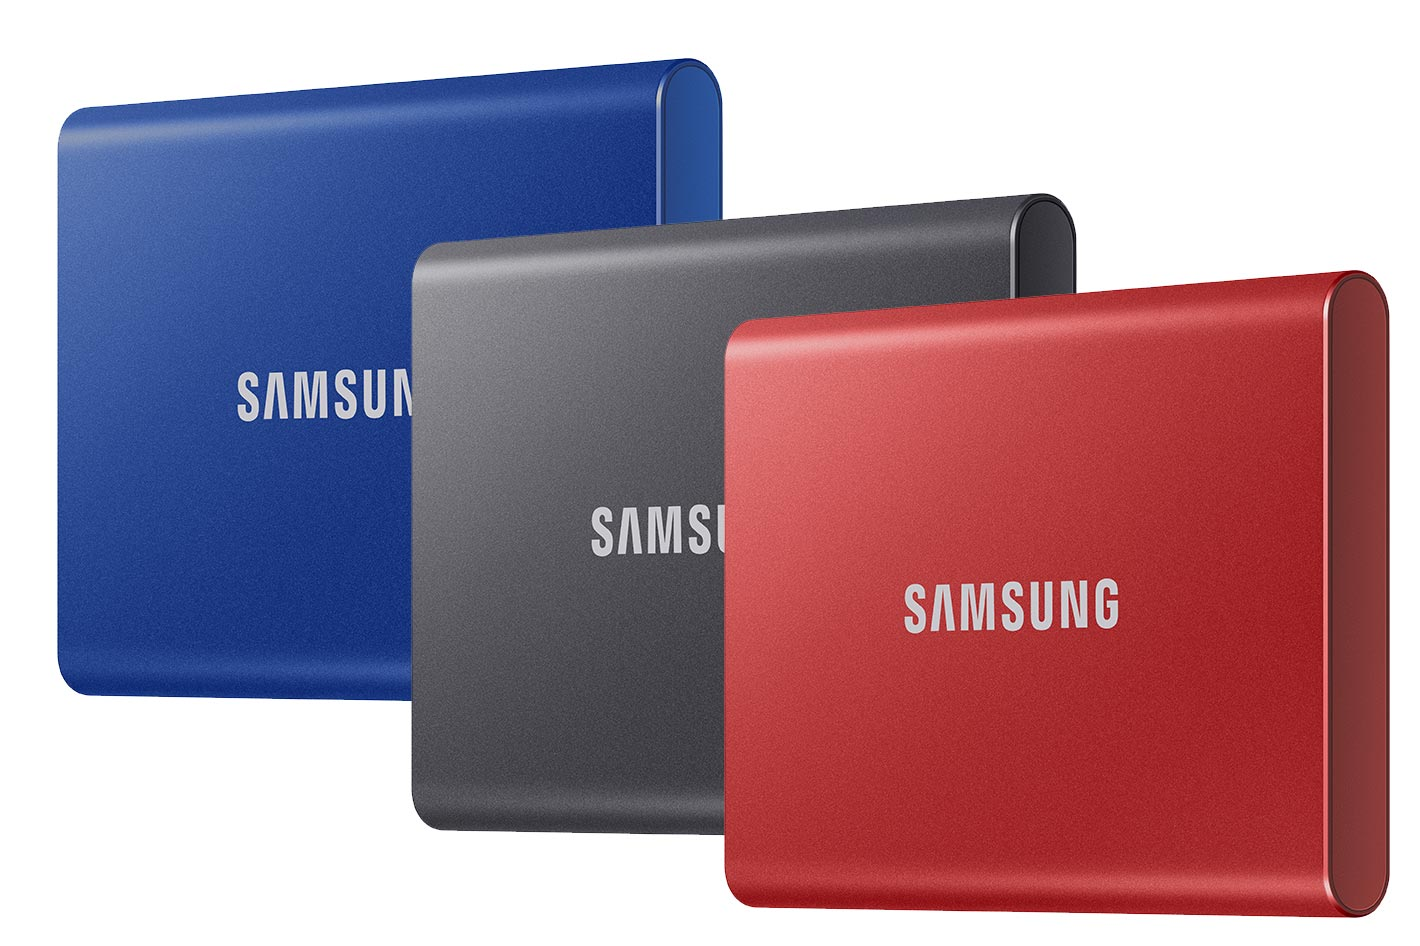 Samsung Portable T7 SSD: fast mobile storage now available